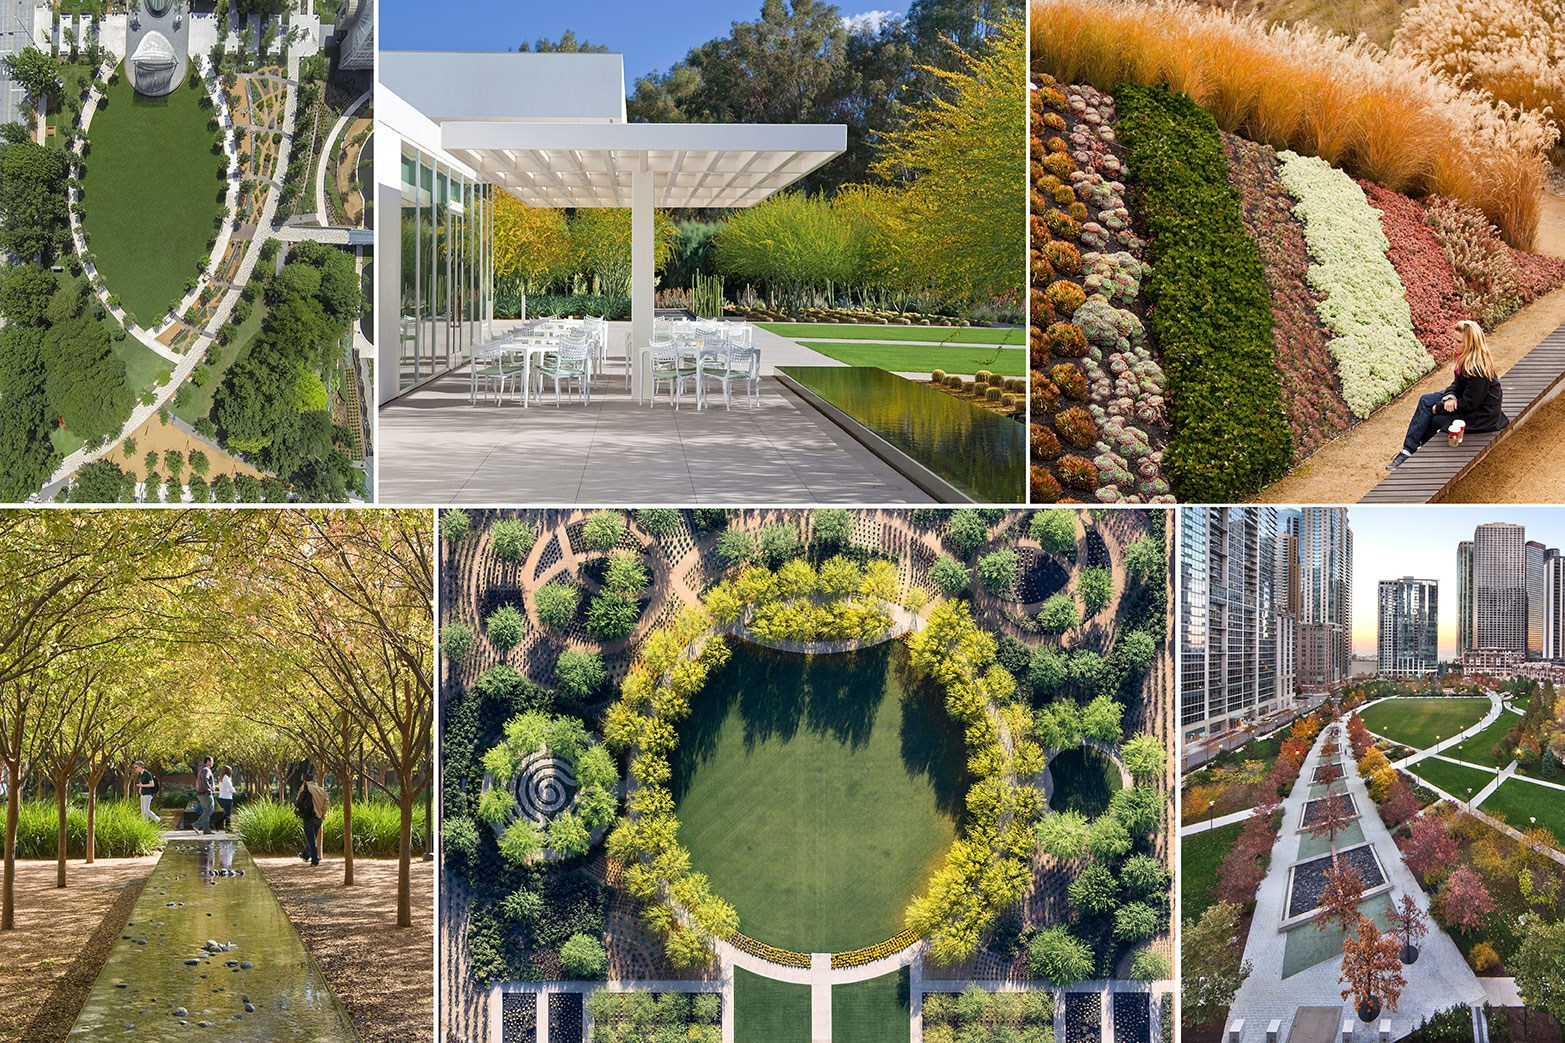 Asla awards 2016 design medal to james burnett fasla for American institute of landscape architects